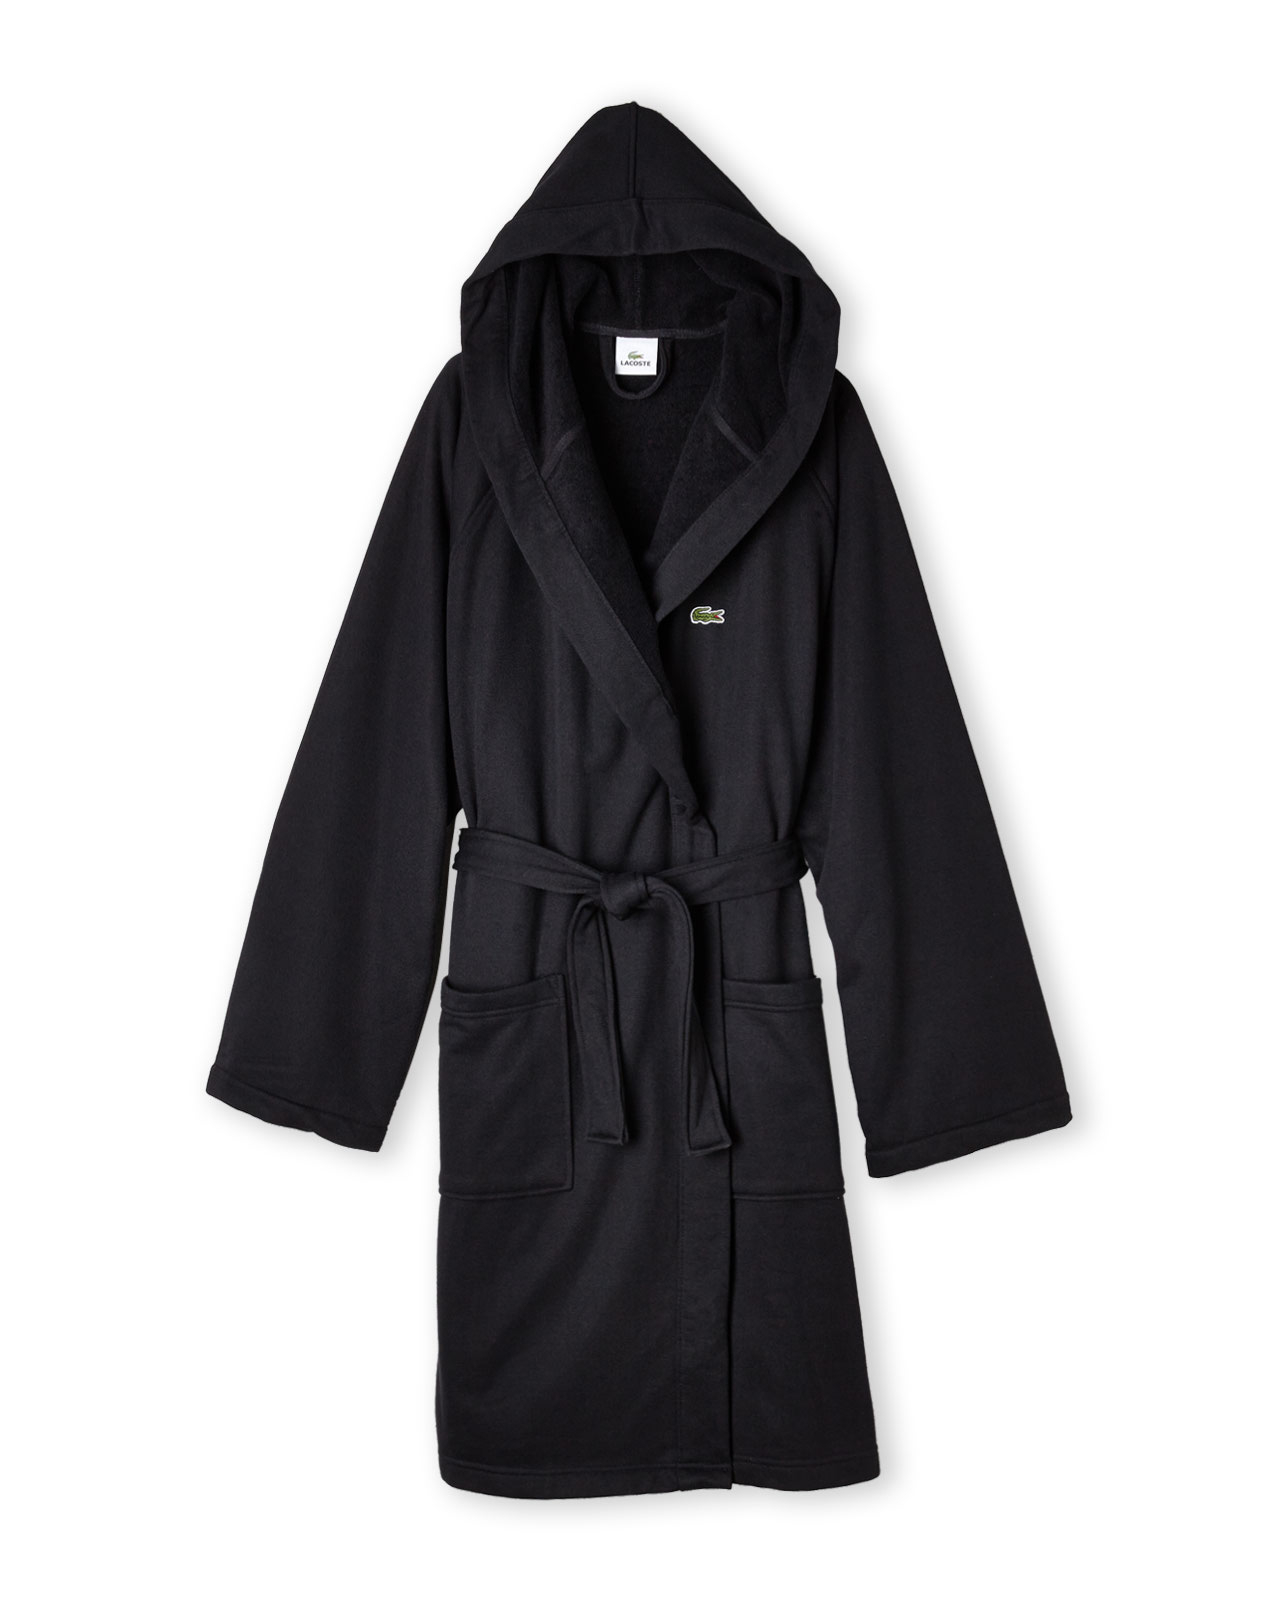 Lyst - Lacoste Hooded Pique Robe in Black for Men